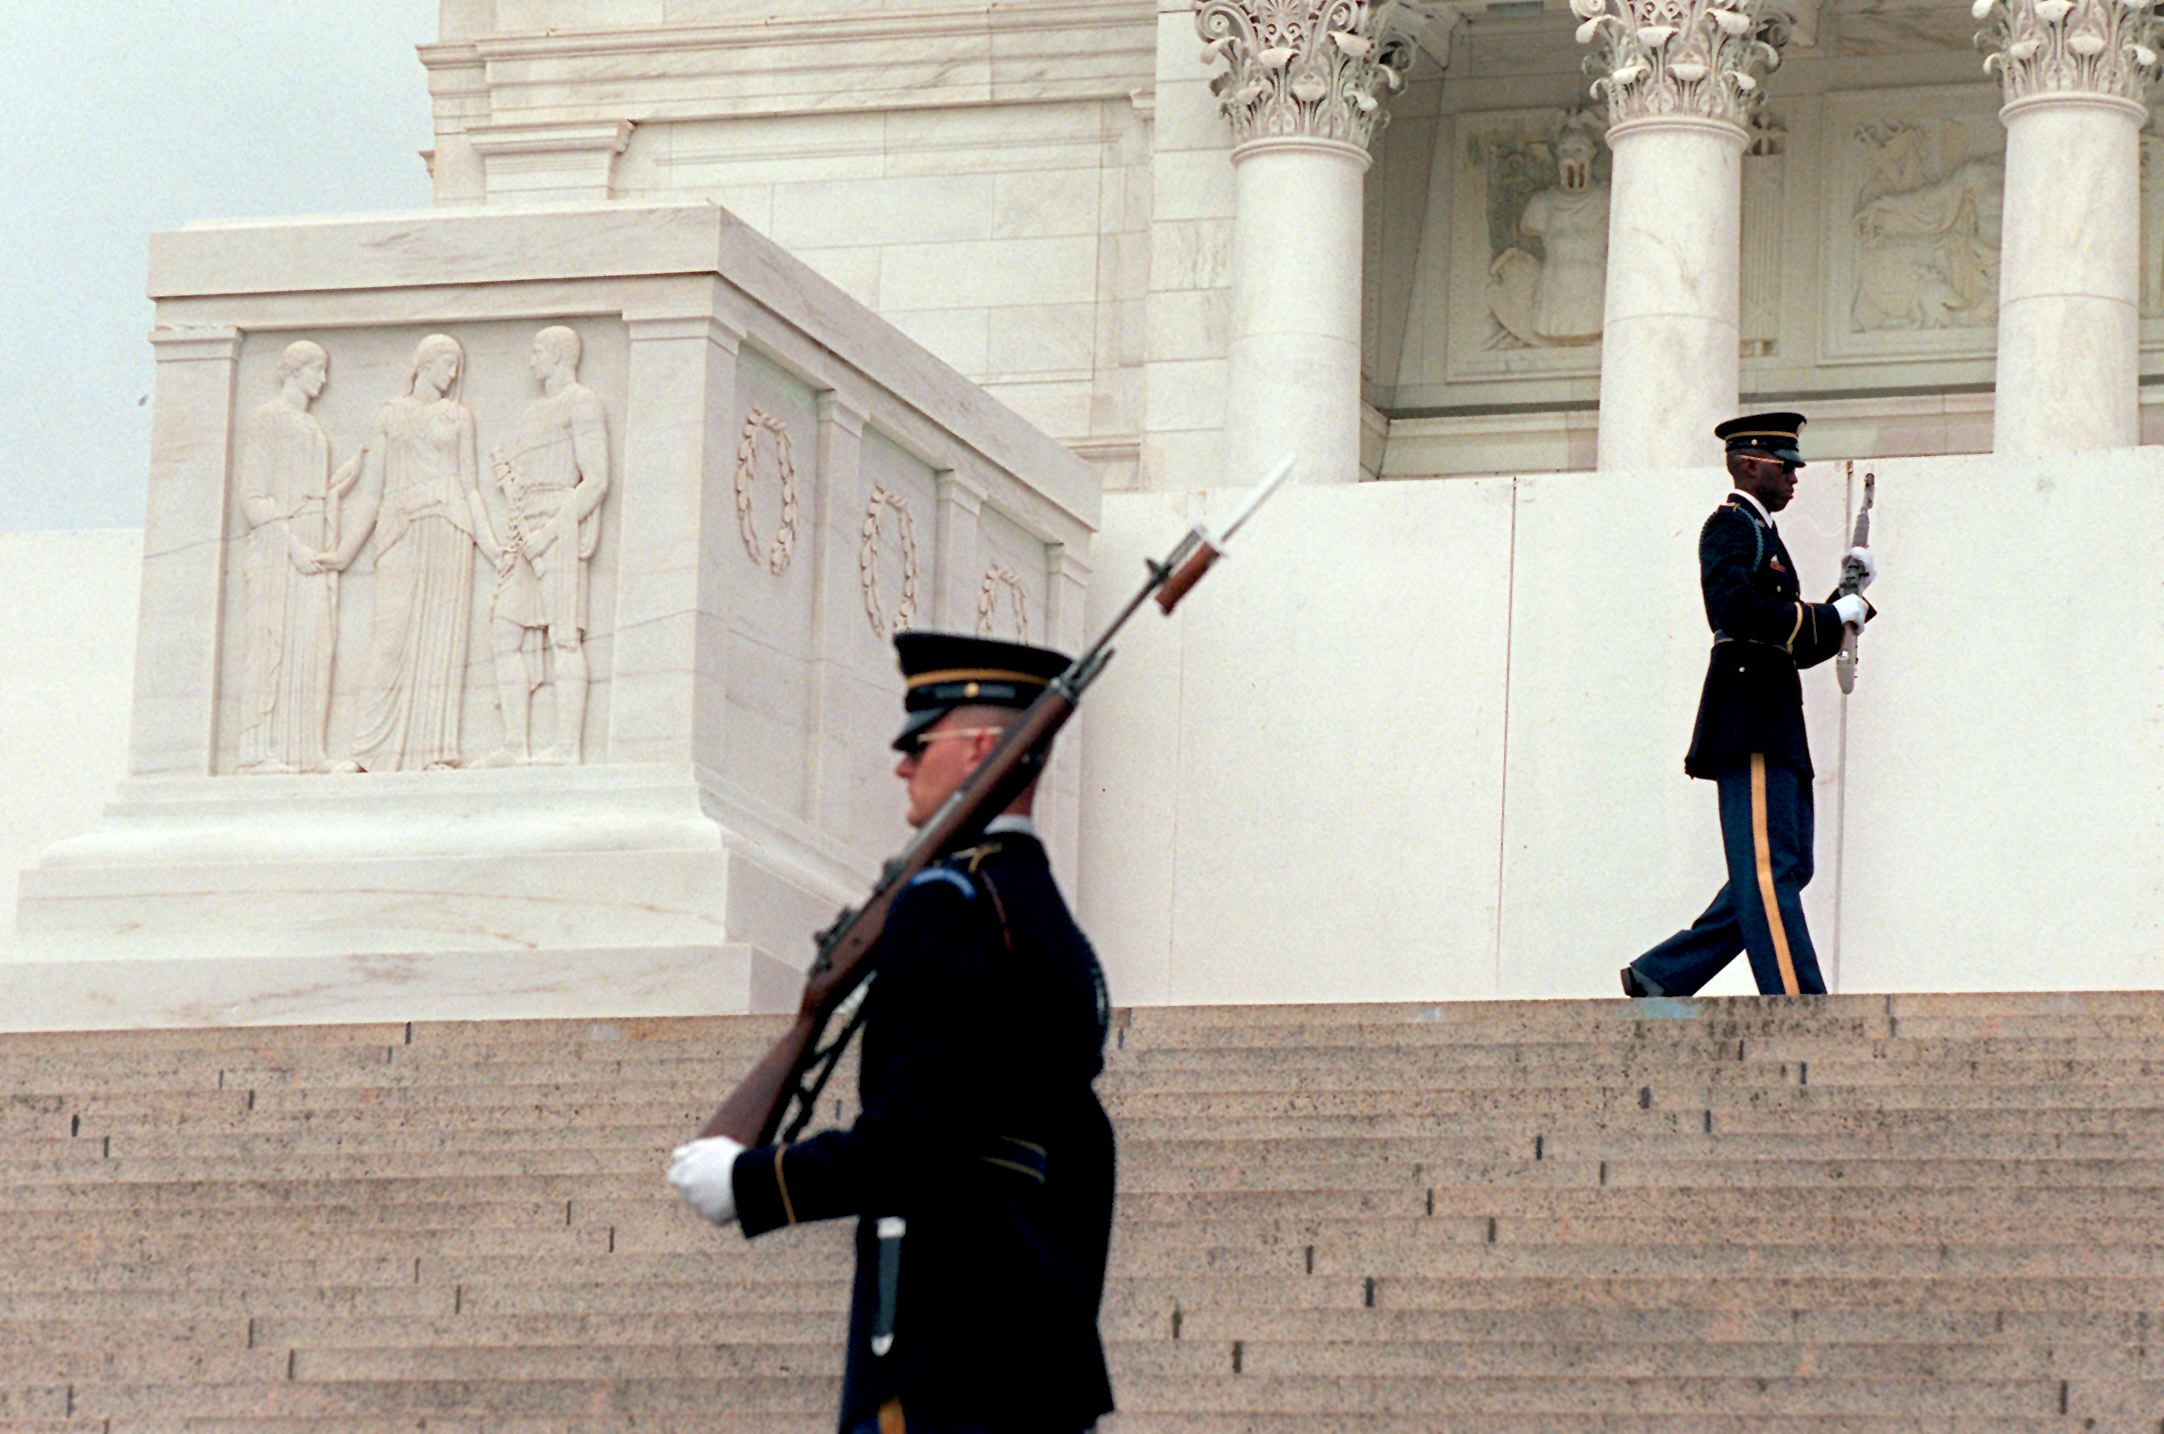 Army soldiers of the Old Guard walk their posts at the Tomb of the Unknowns at Arlington National Cemetery in Va,  May 13, 1998.